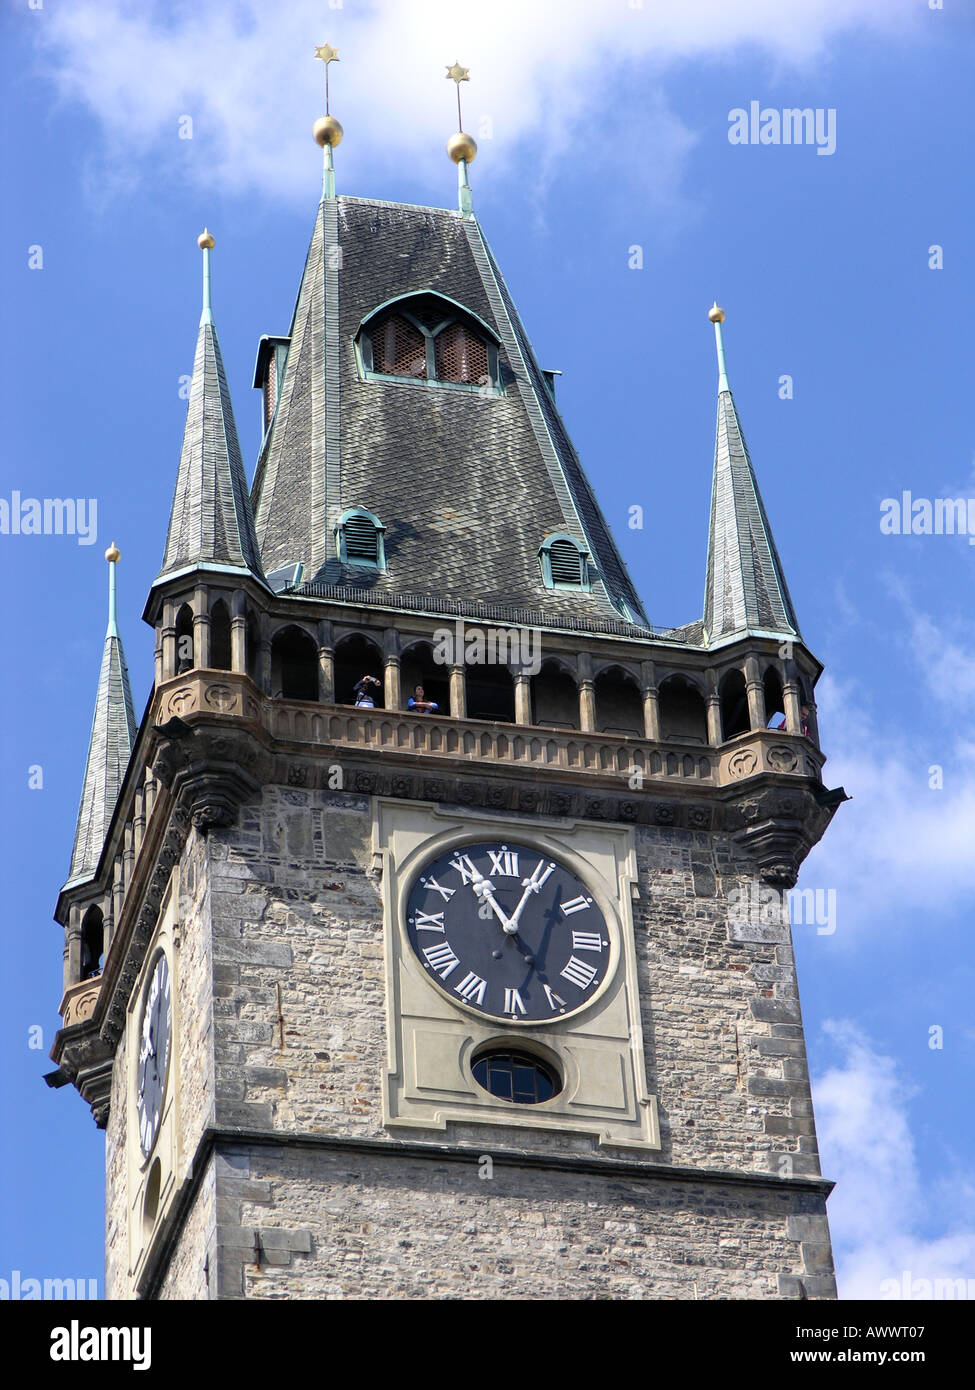 Clock Tower Old Town Square Prague Czech Republic Europe - Stock Image